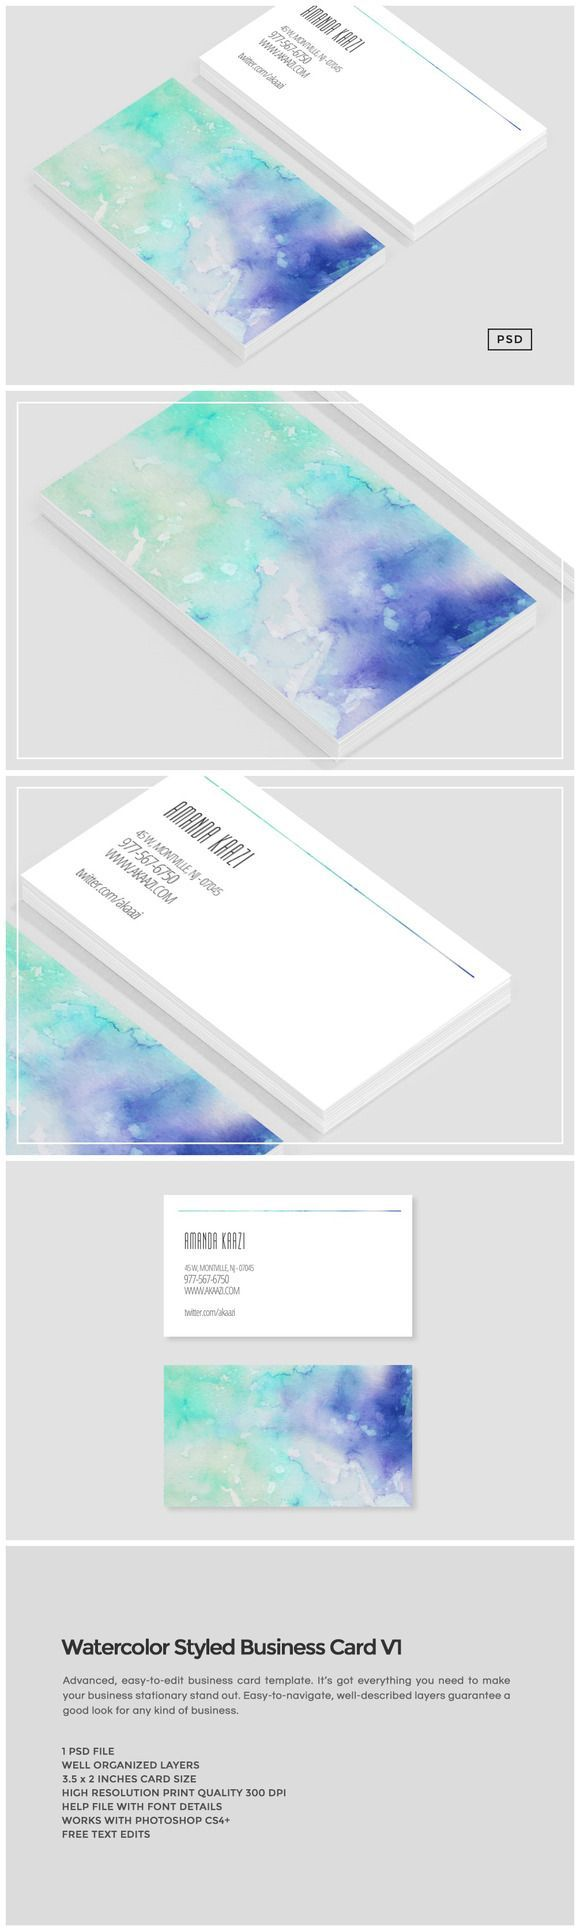 Watercolour design business card